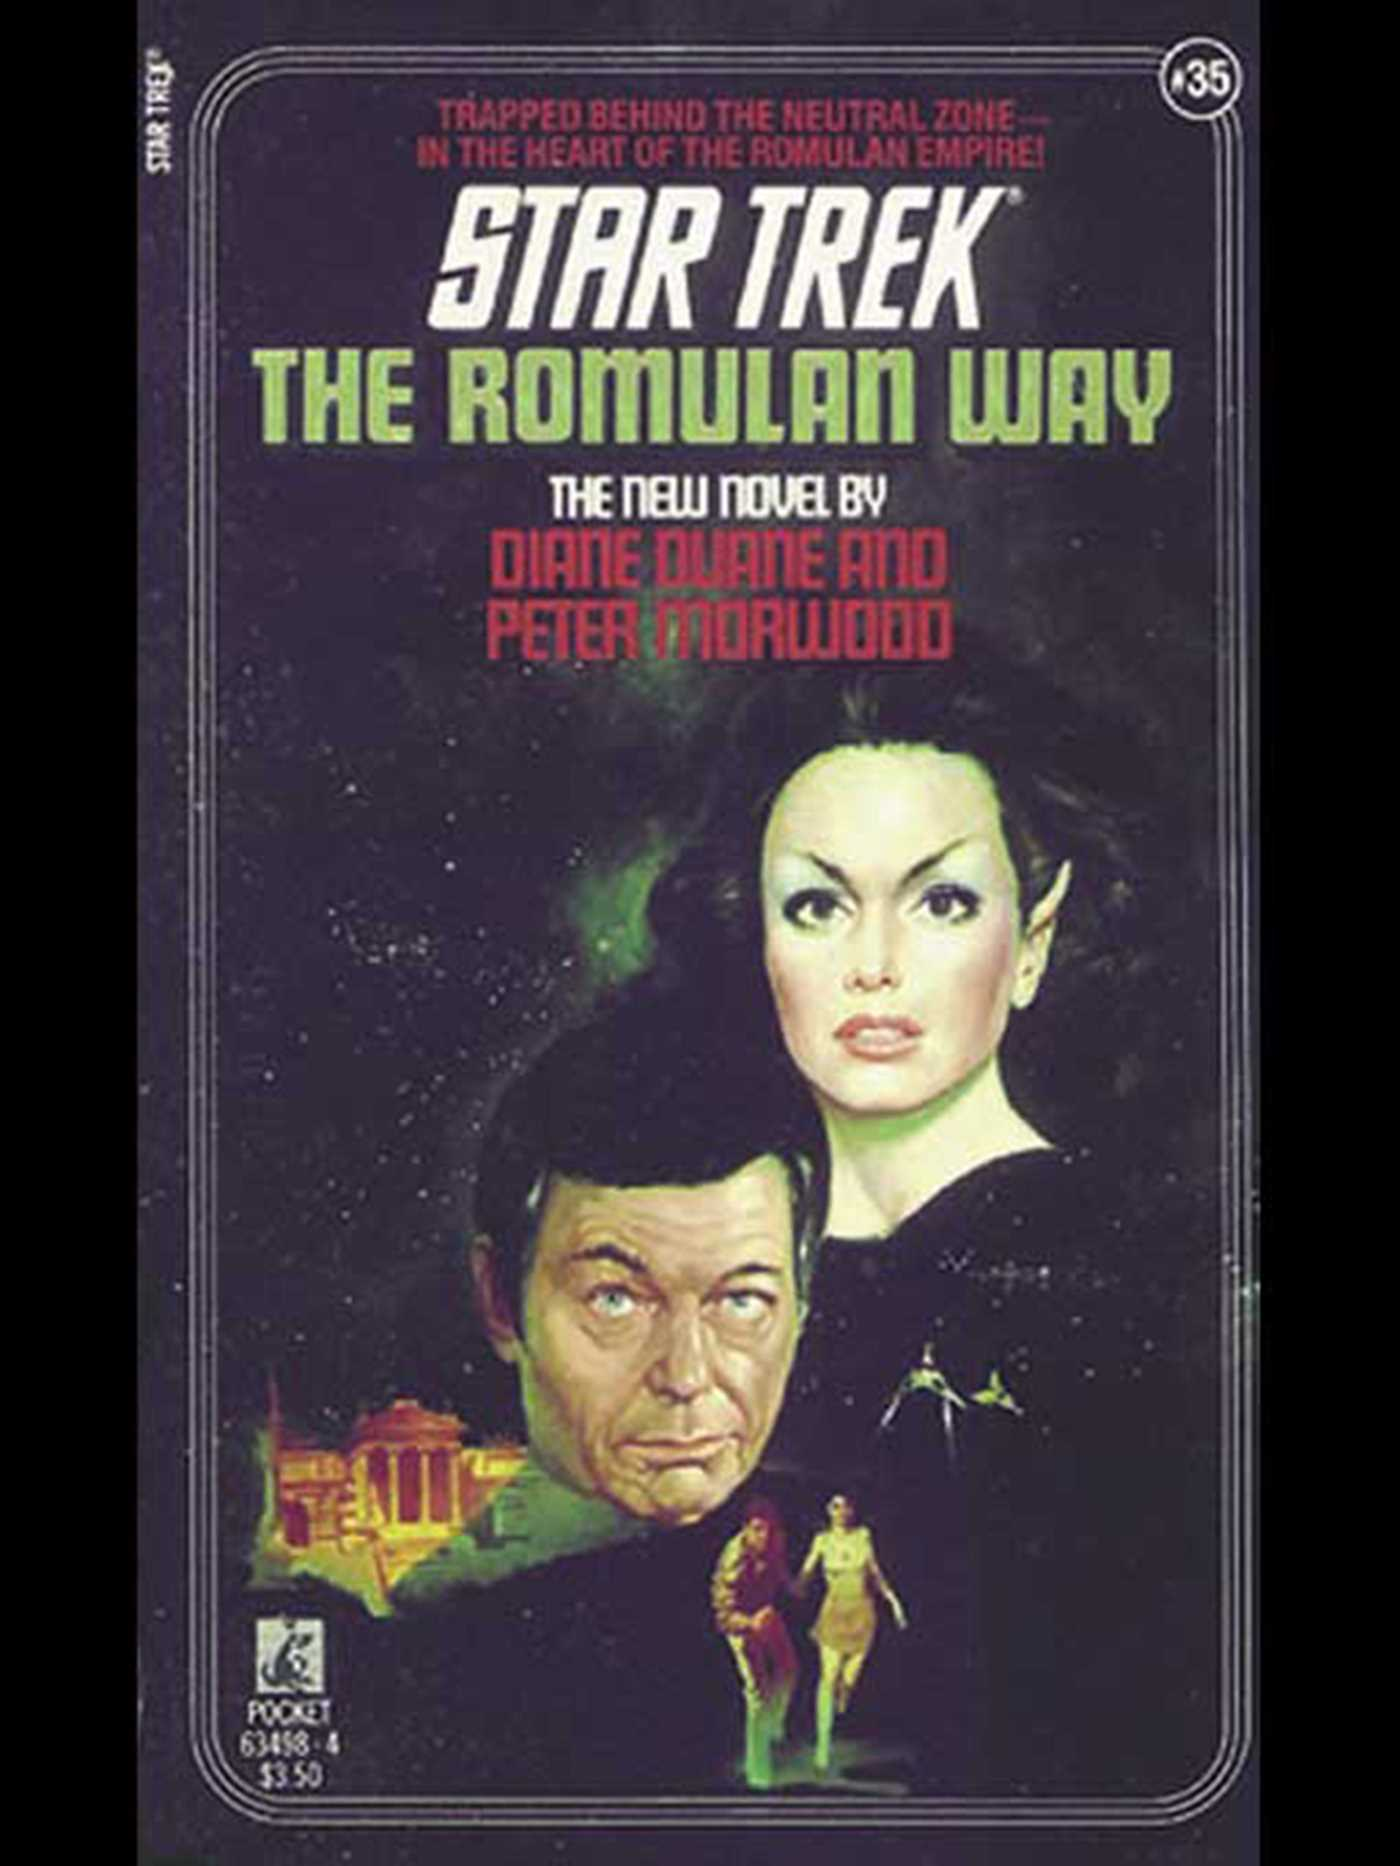 The-romulan-way-9780743419864_hr